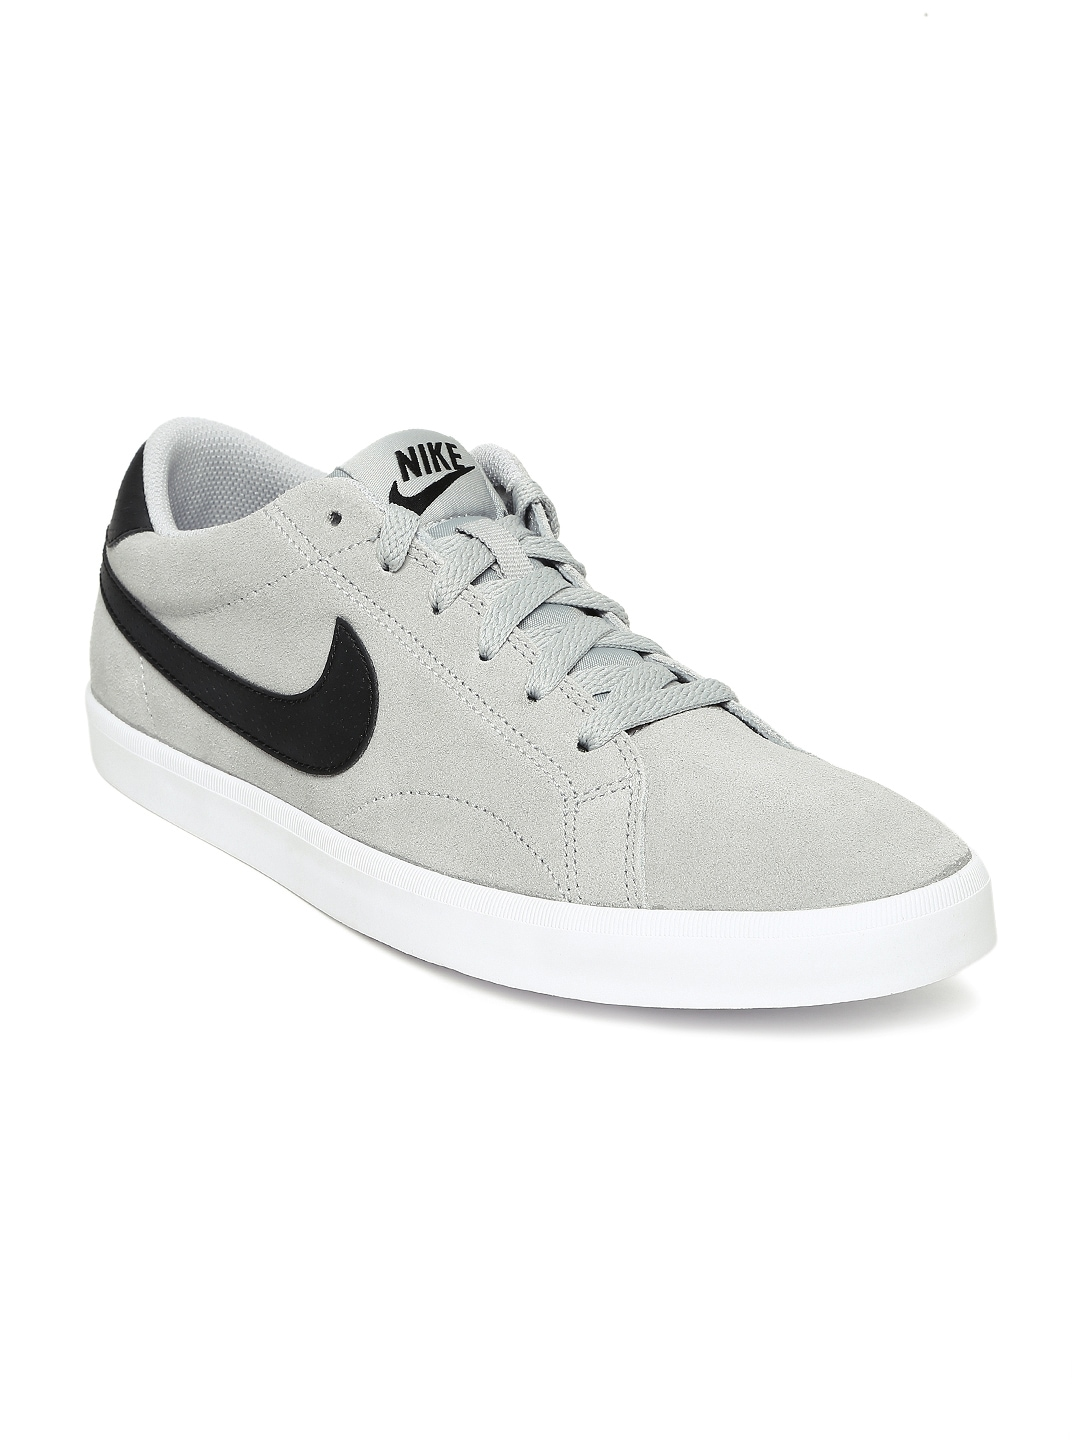 nike casual shoes mens